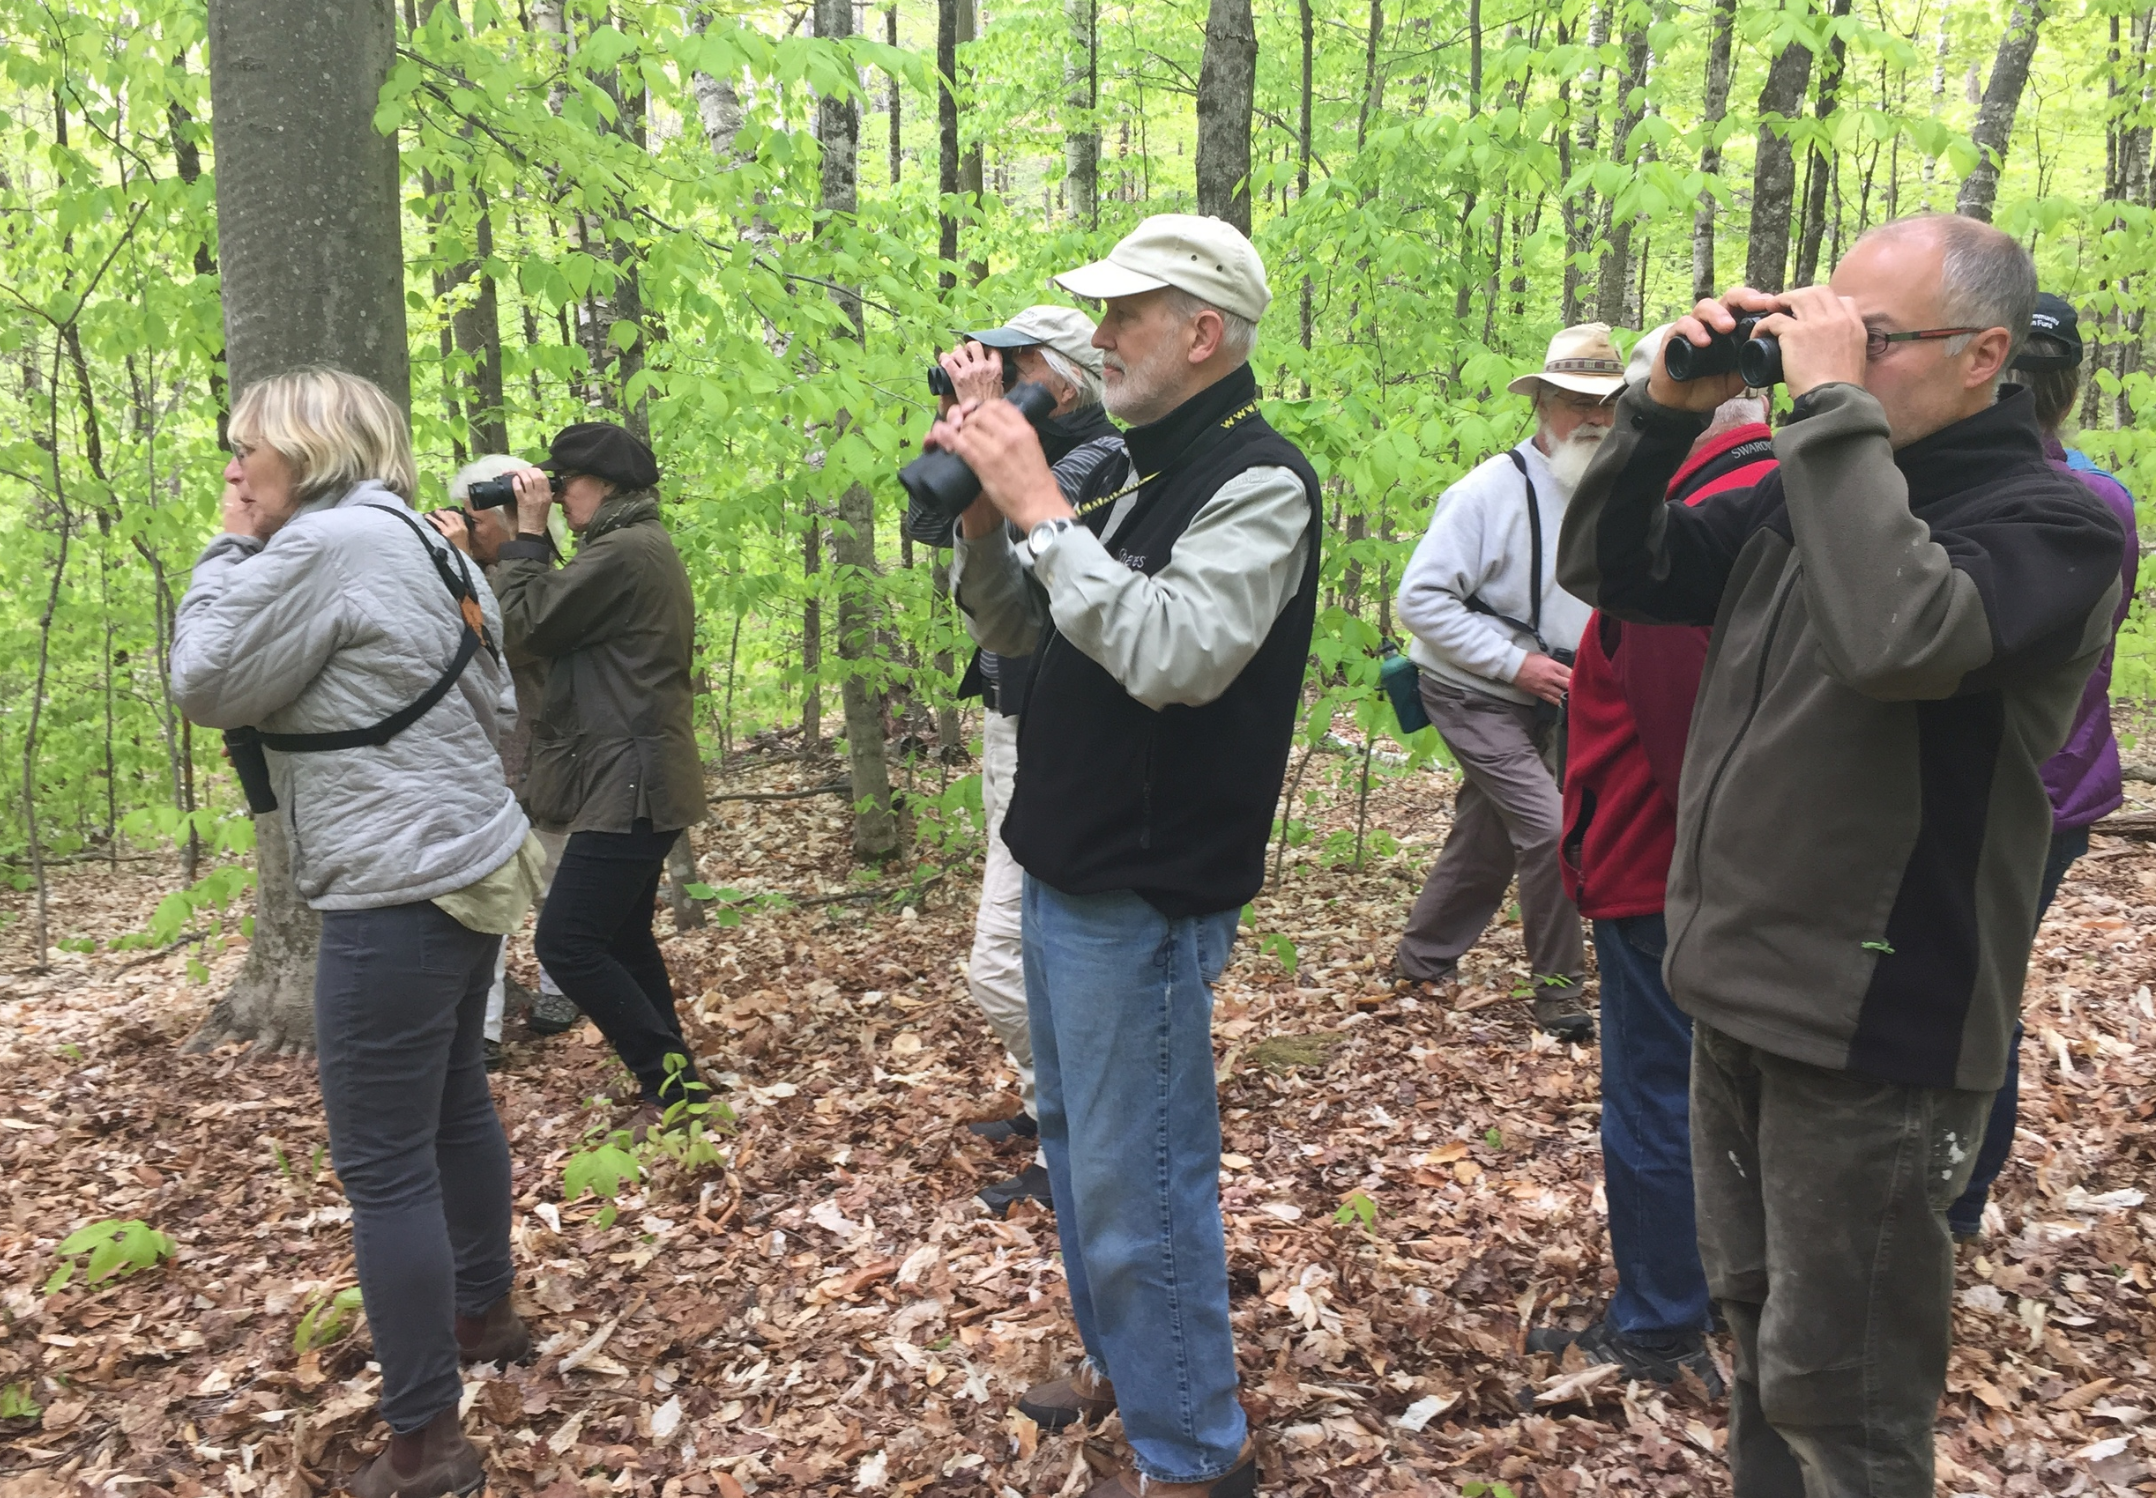 guided-bird-walk-bob-engel-nature-museum-grafton